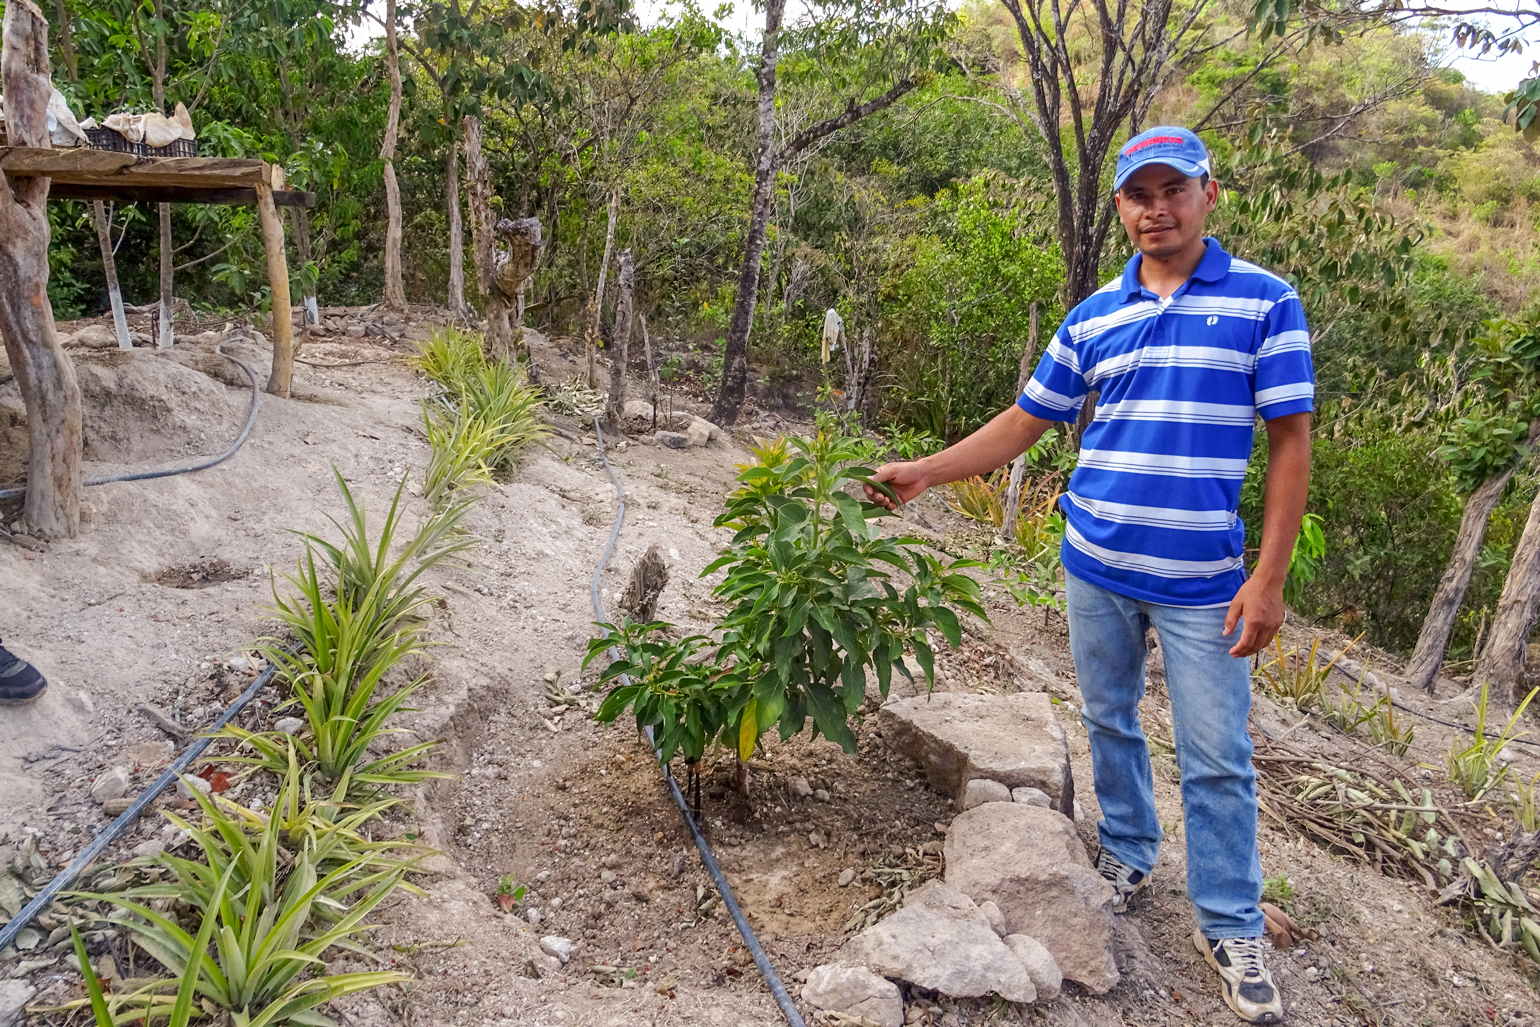 Farming through hardship: A family farmer in Honduras discusses COVID, hurricanes and more - a photo of a man in jeans, a striped polo shirt and a baseball cap. He's standing next to a shrub that comes up to his waist and he's holding one of its leaves gently in his right hand. He's on a slope of dry, rocky soil.